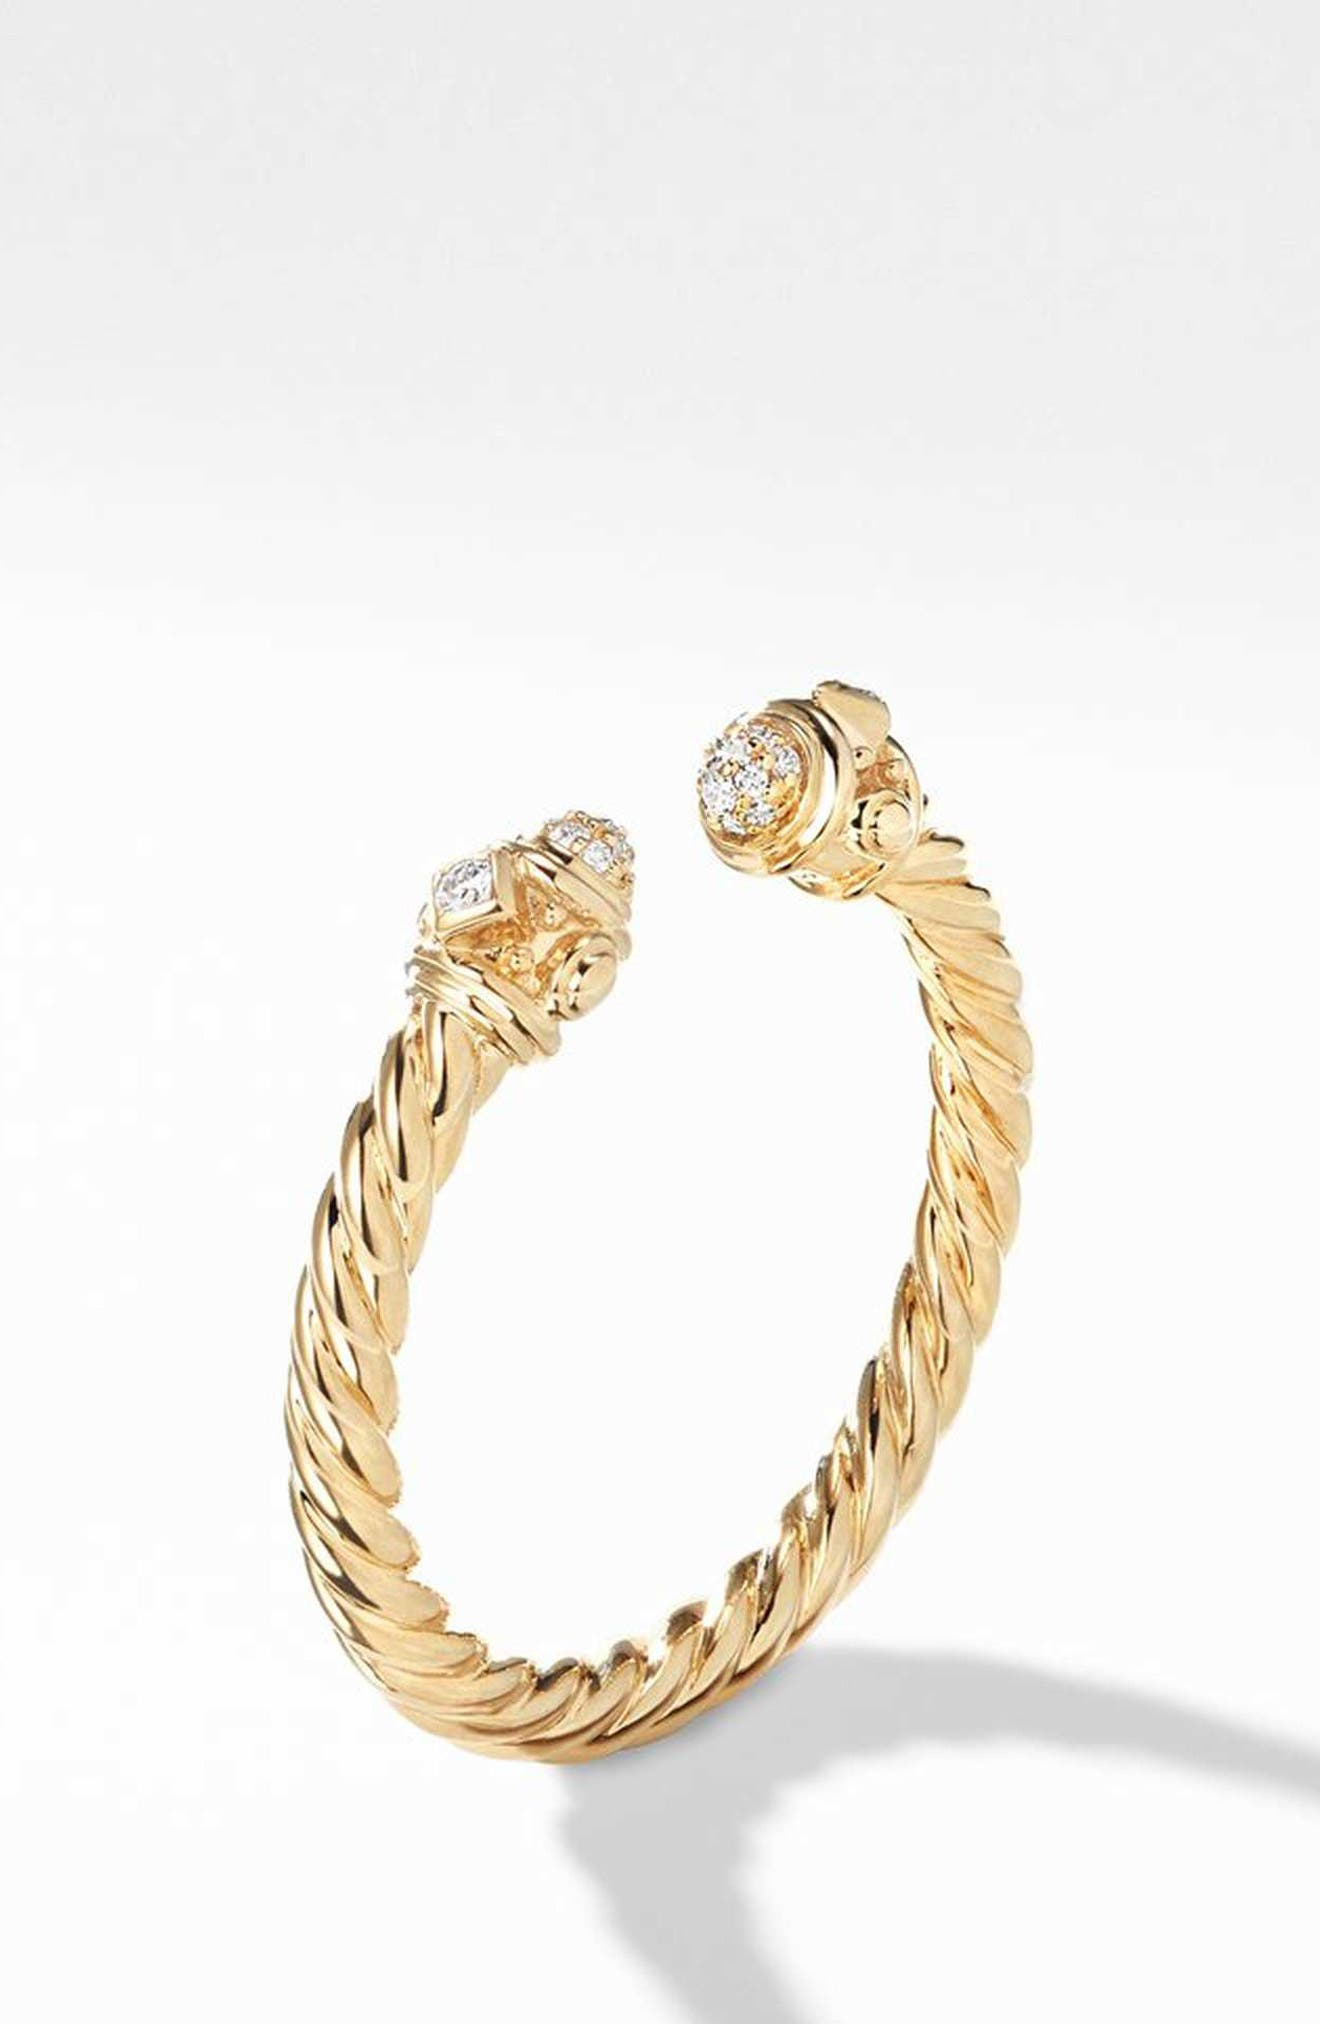 Renaissance Ring in 18K Gold with Diamonds,                             Alternate thumbnail 2, color,                             GOLD/ DIAMOND